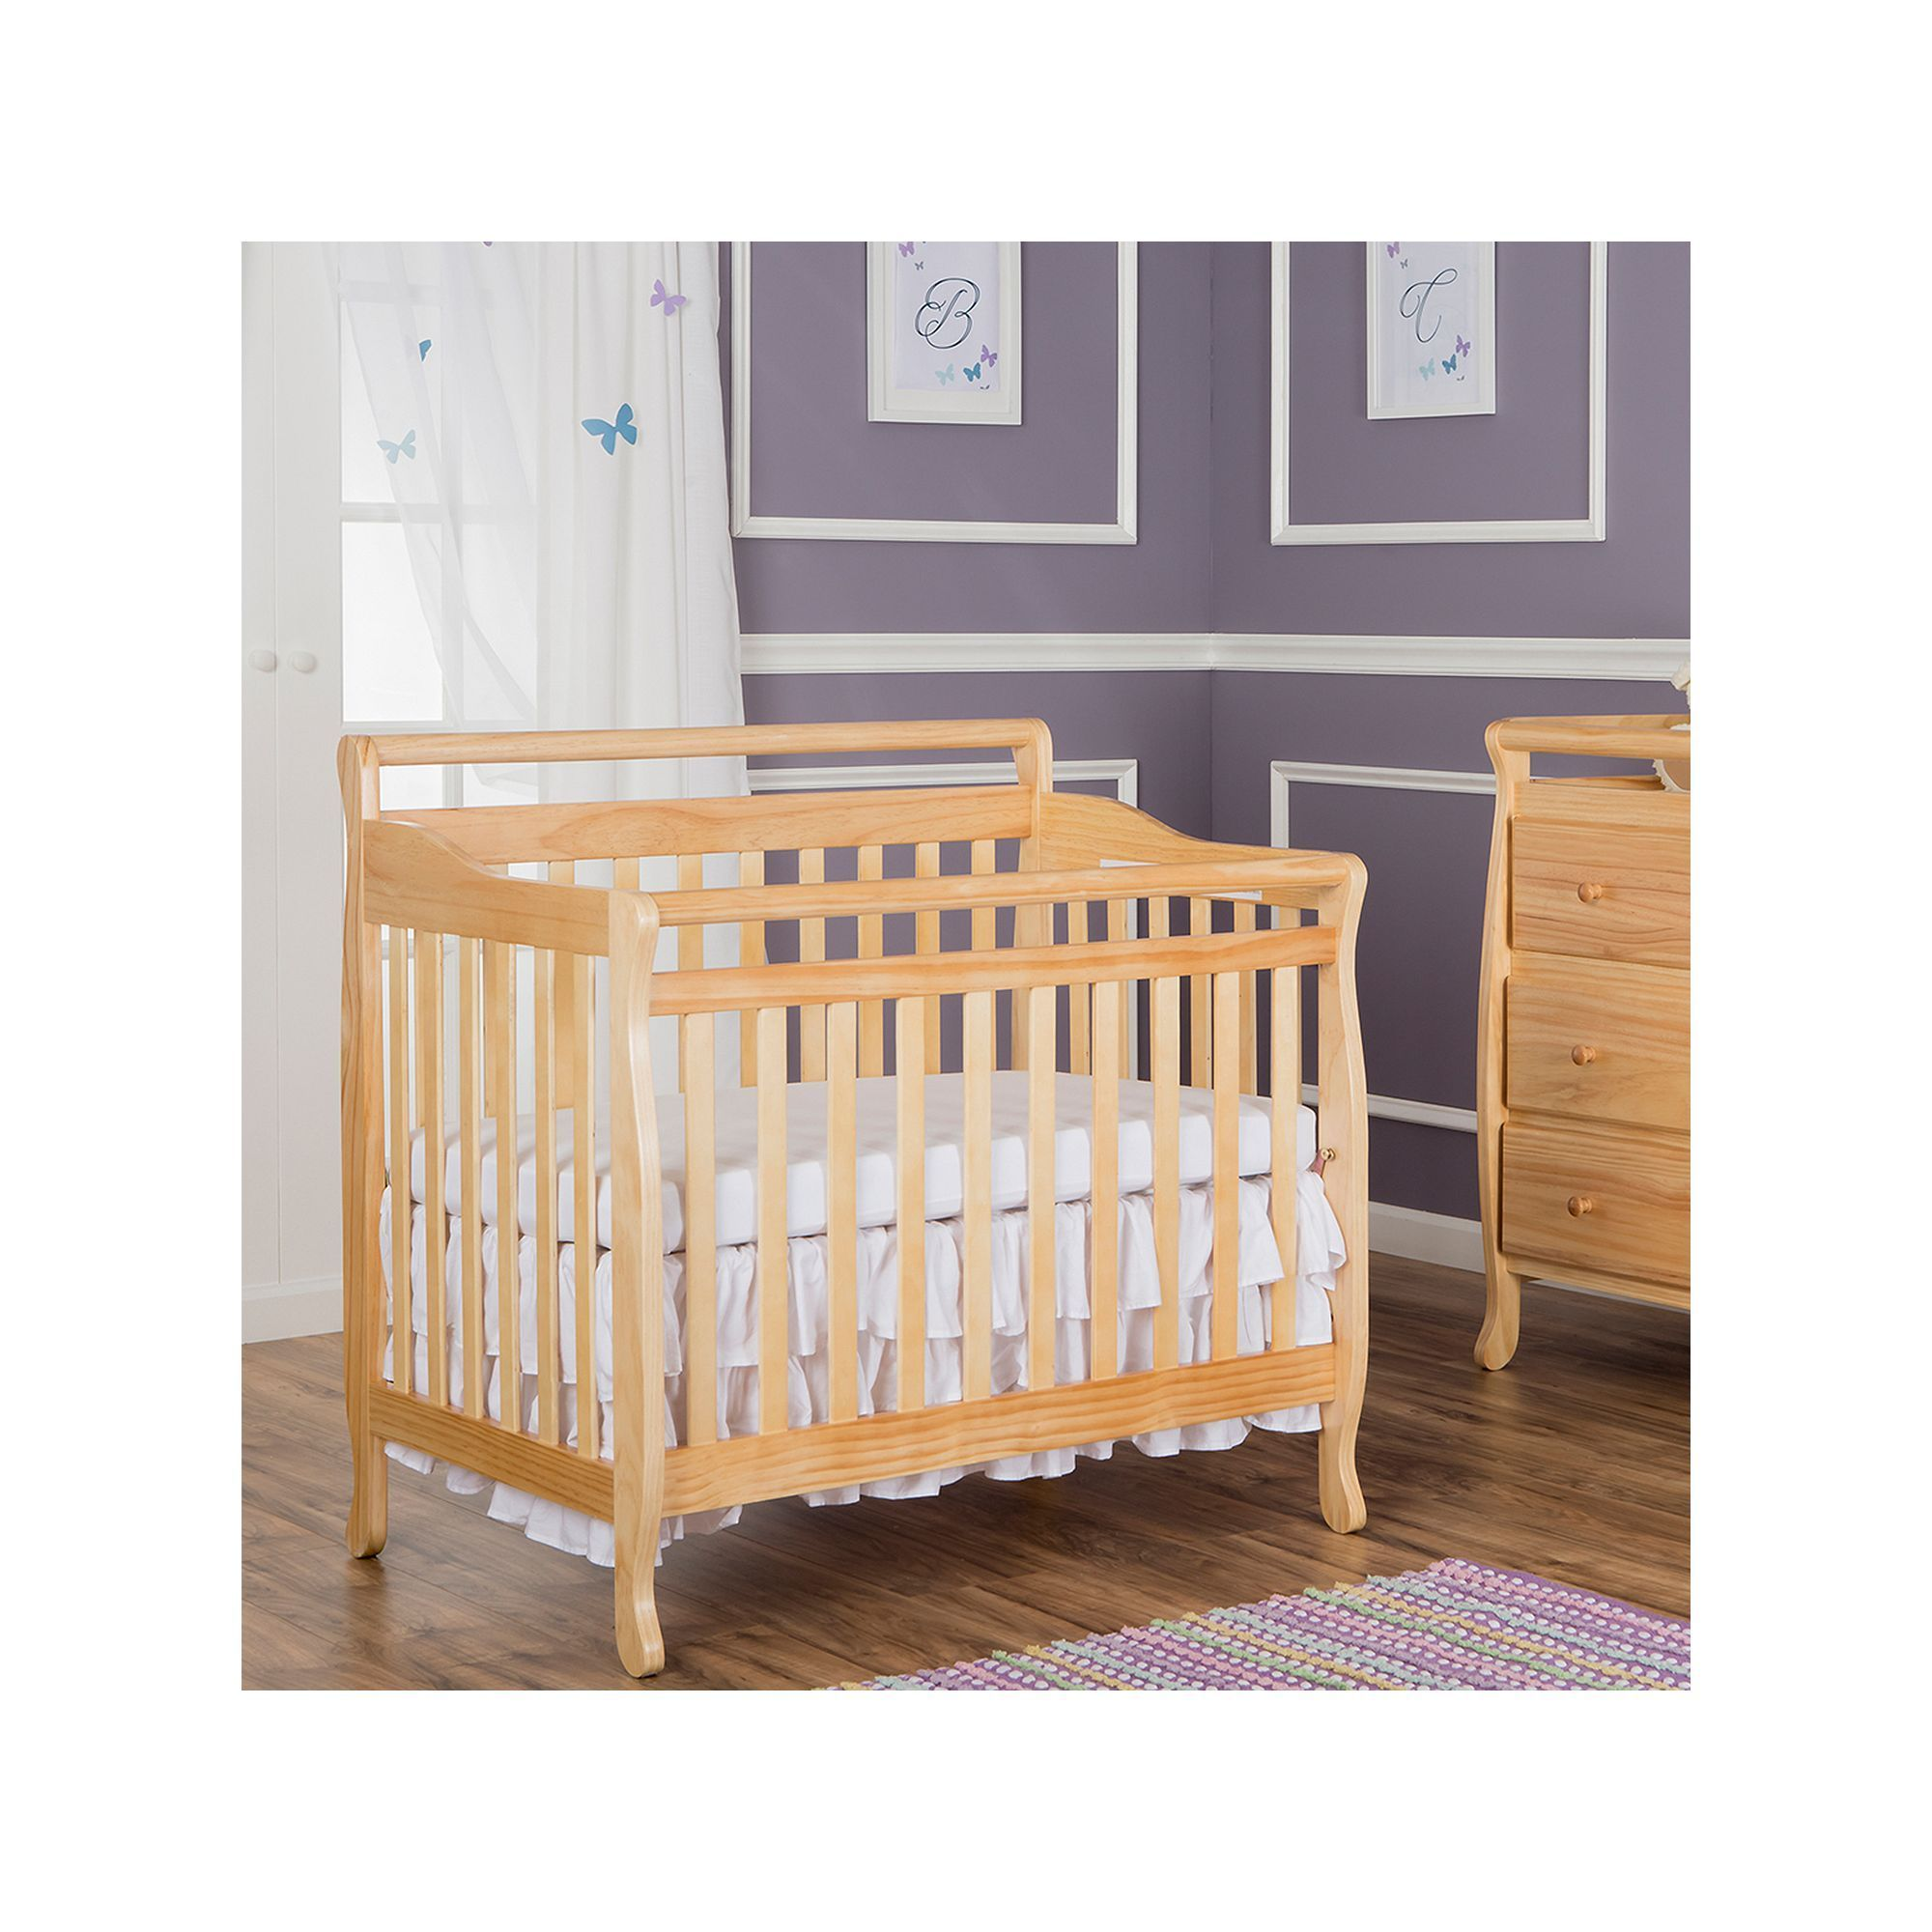 in wayfair dream aden mini cribs reviews kids baby convertible on crib pdx me